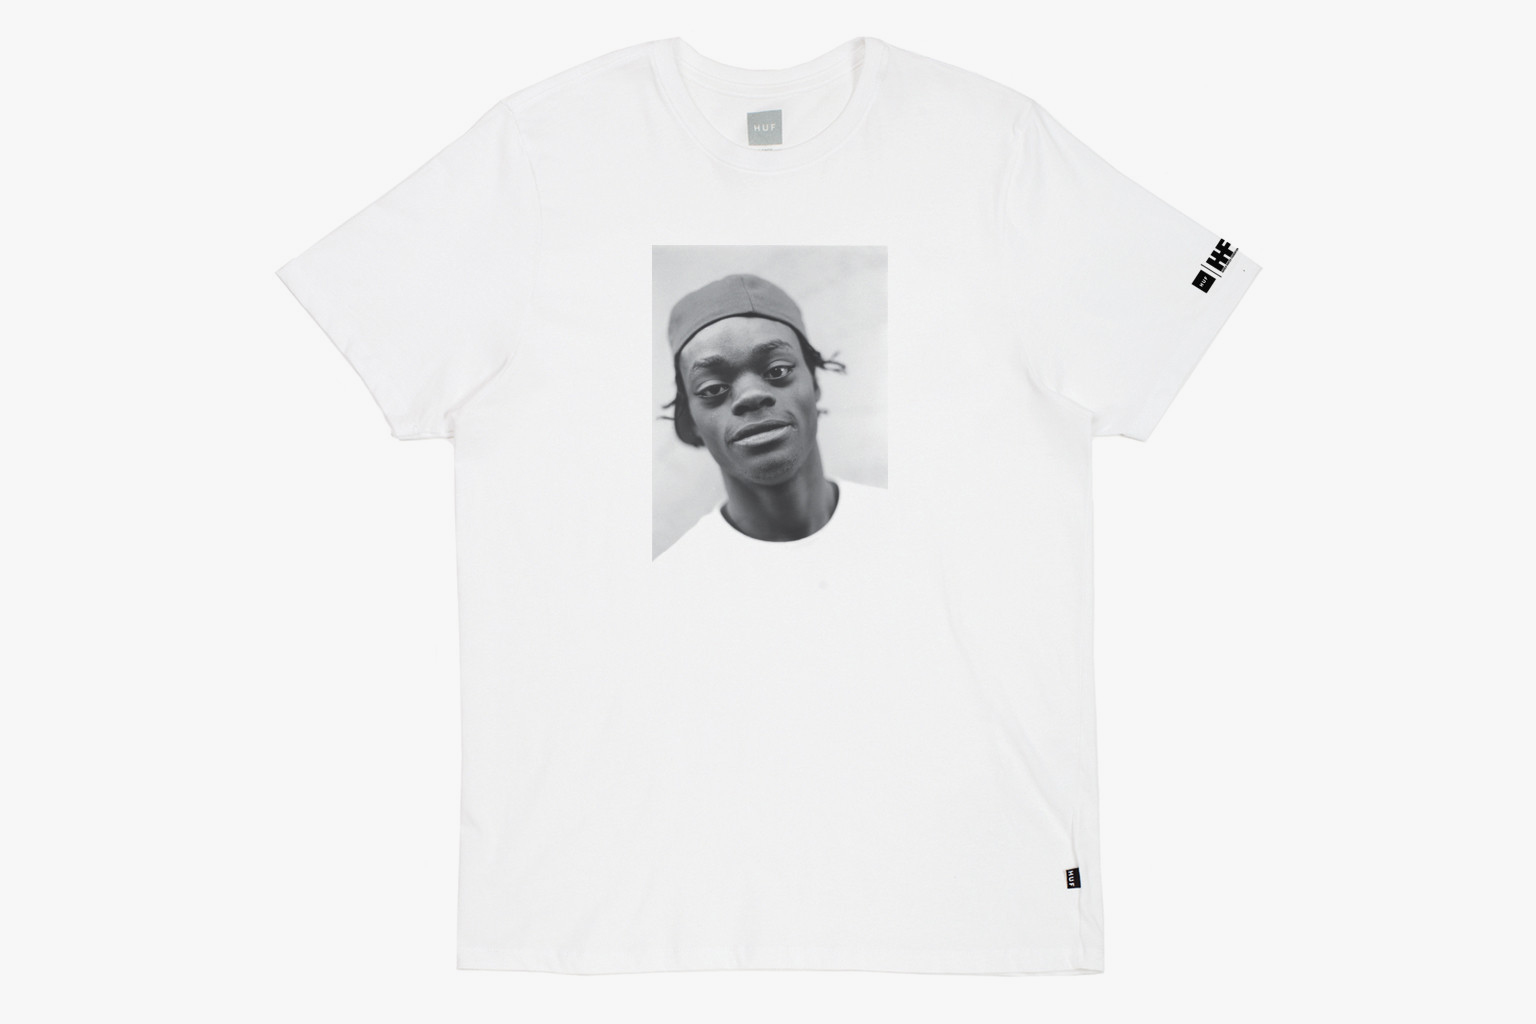 HUF Collaborates With The Harold Hunter Foundation to Support Grassroots Skateboarding